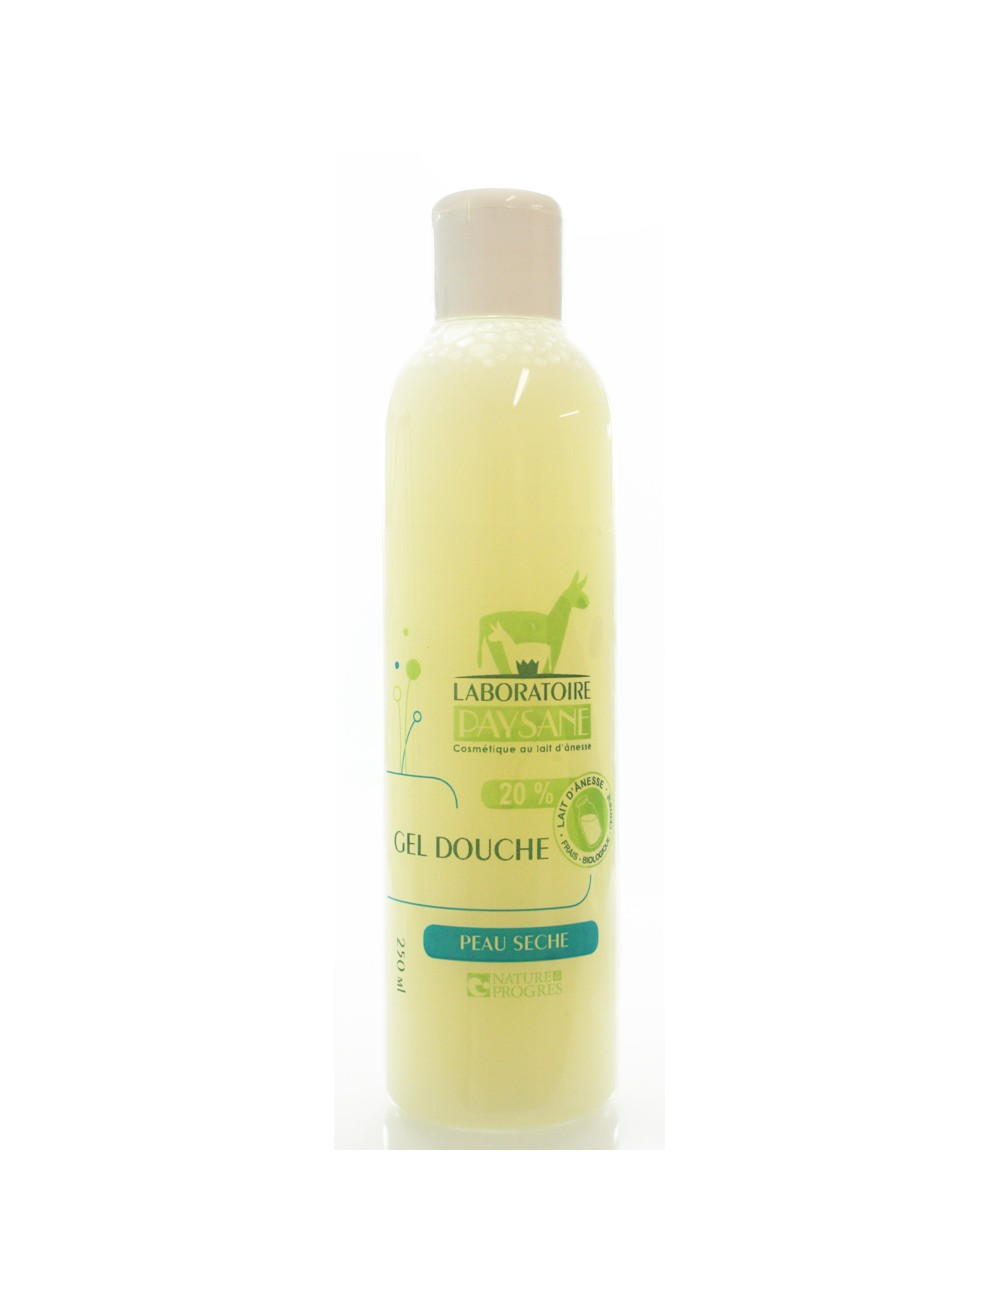 Gel douche au lait d'anesse 200ml